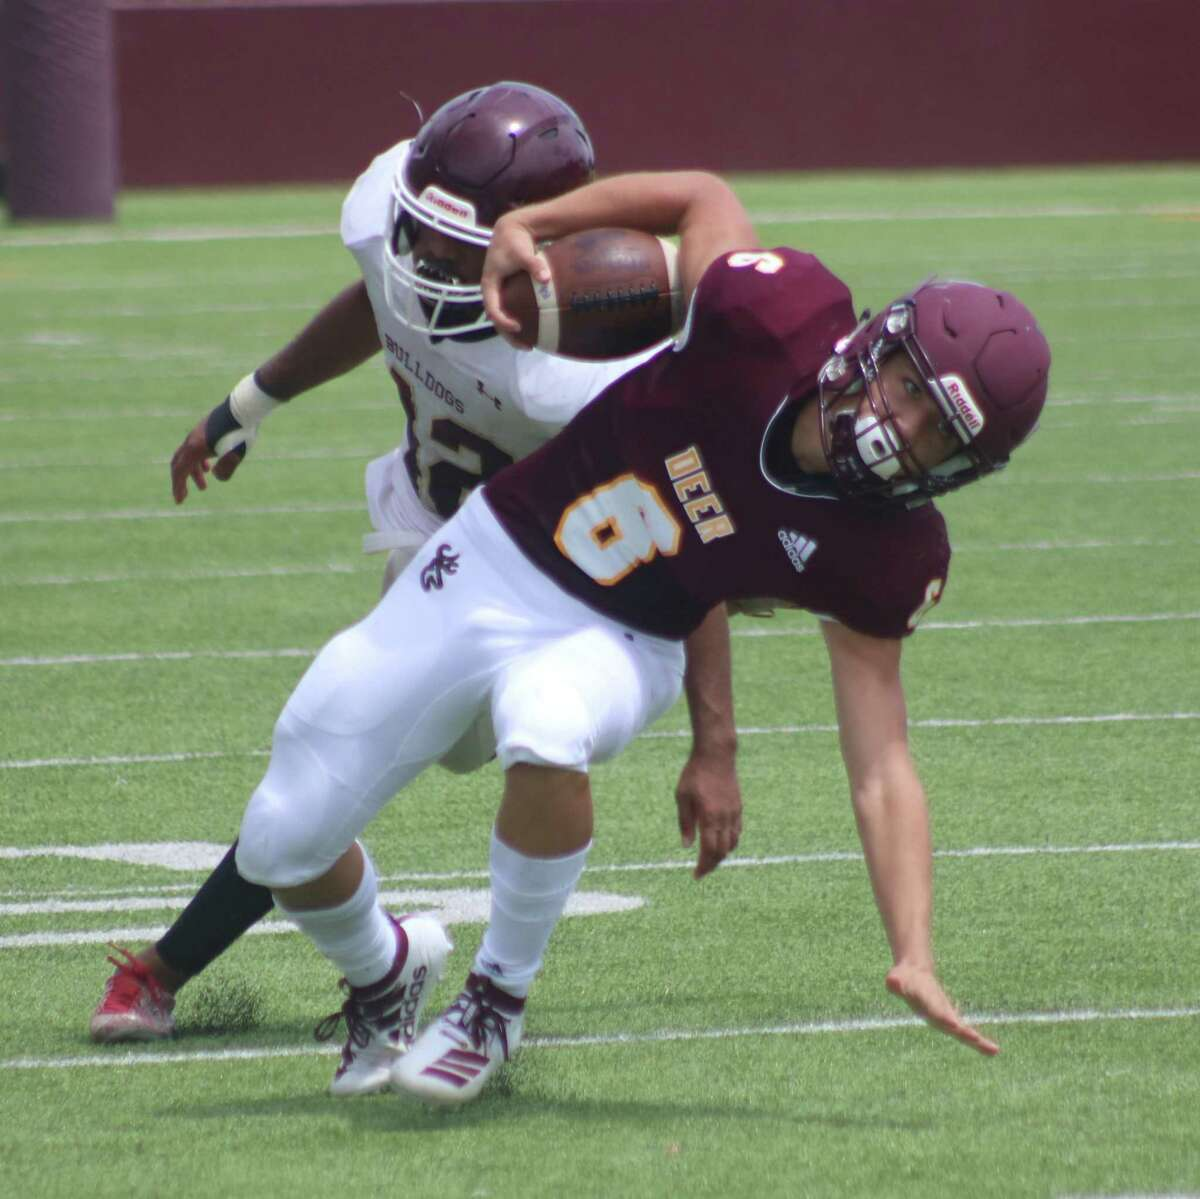 Deer Park's Alex Argueta stays on his feet after catching a pass and avoiding a defender during the scrimmage with Summer Creek last weekend. Argueta used the reception to score one of the team's two touchdowns.